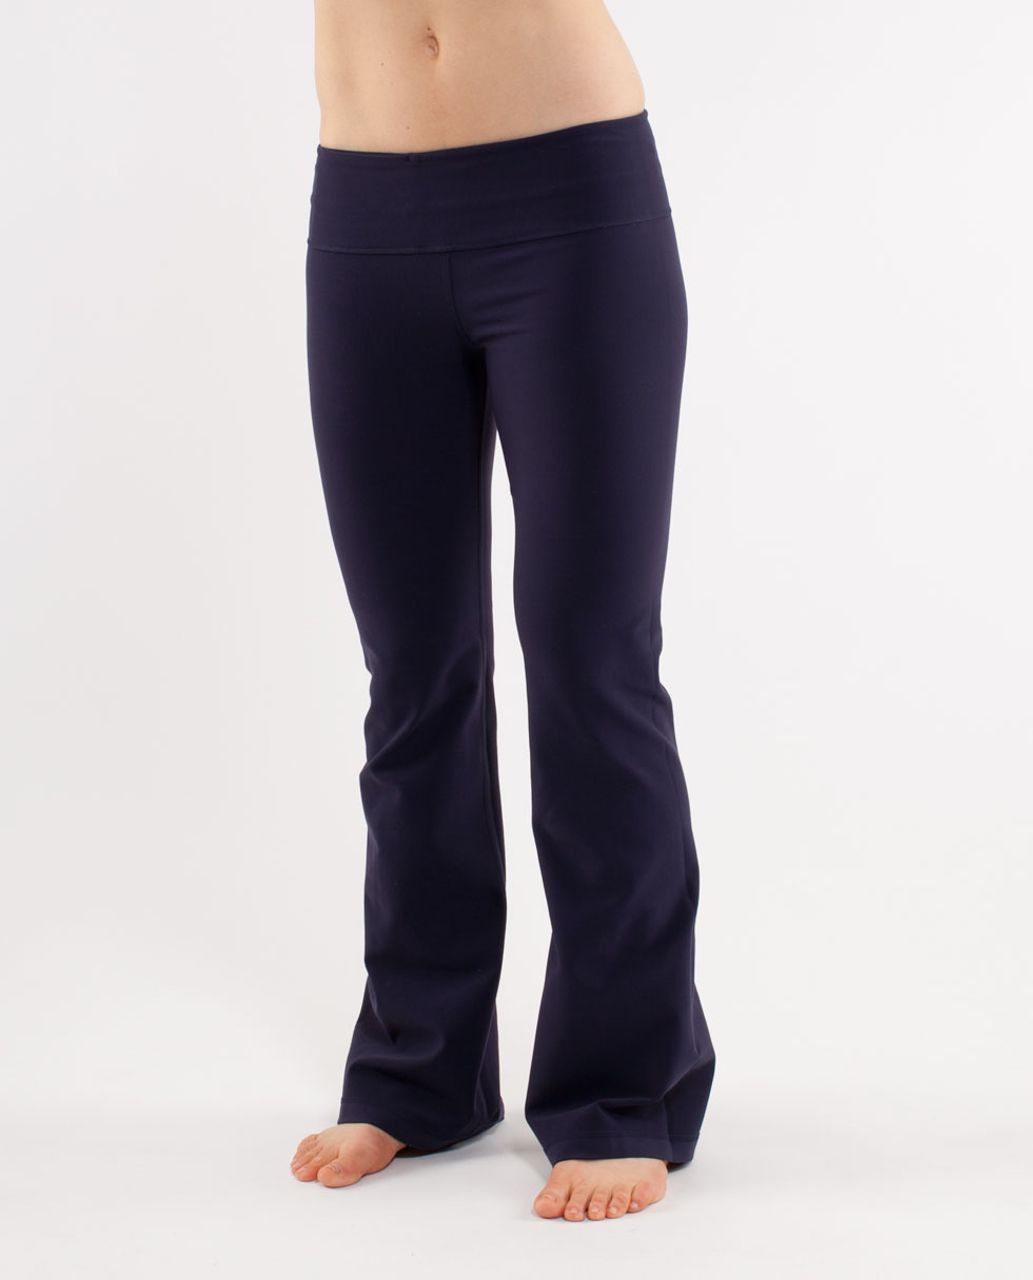 Lululemon Groove Pant (Regular) - Deep Indigo /  Deep Indigo /  Ink Blot White Deep Indigo